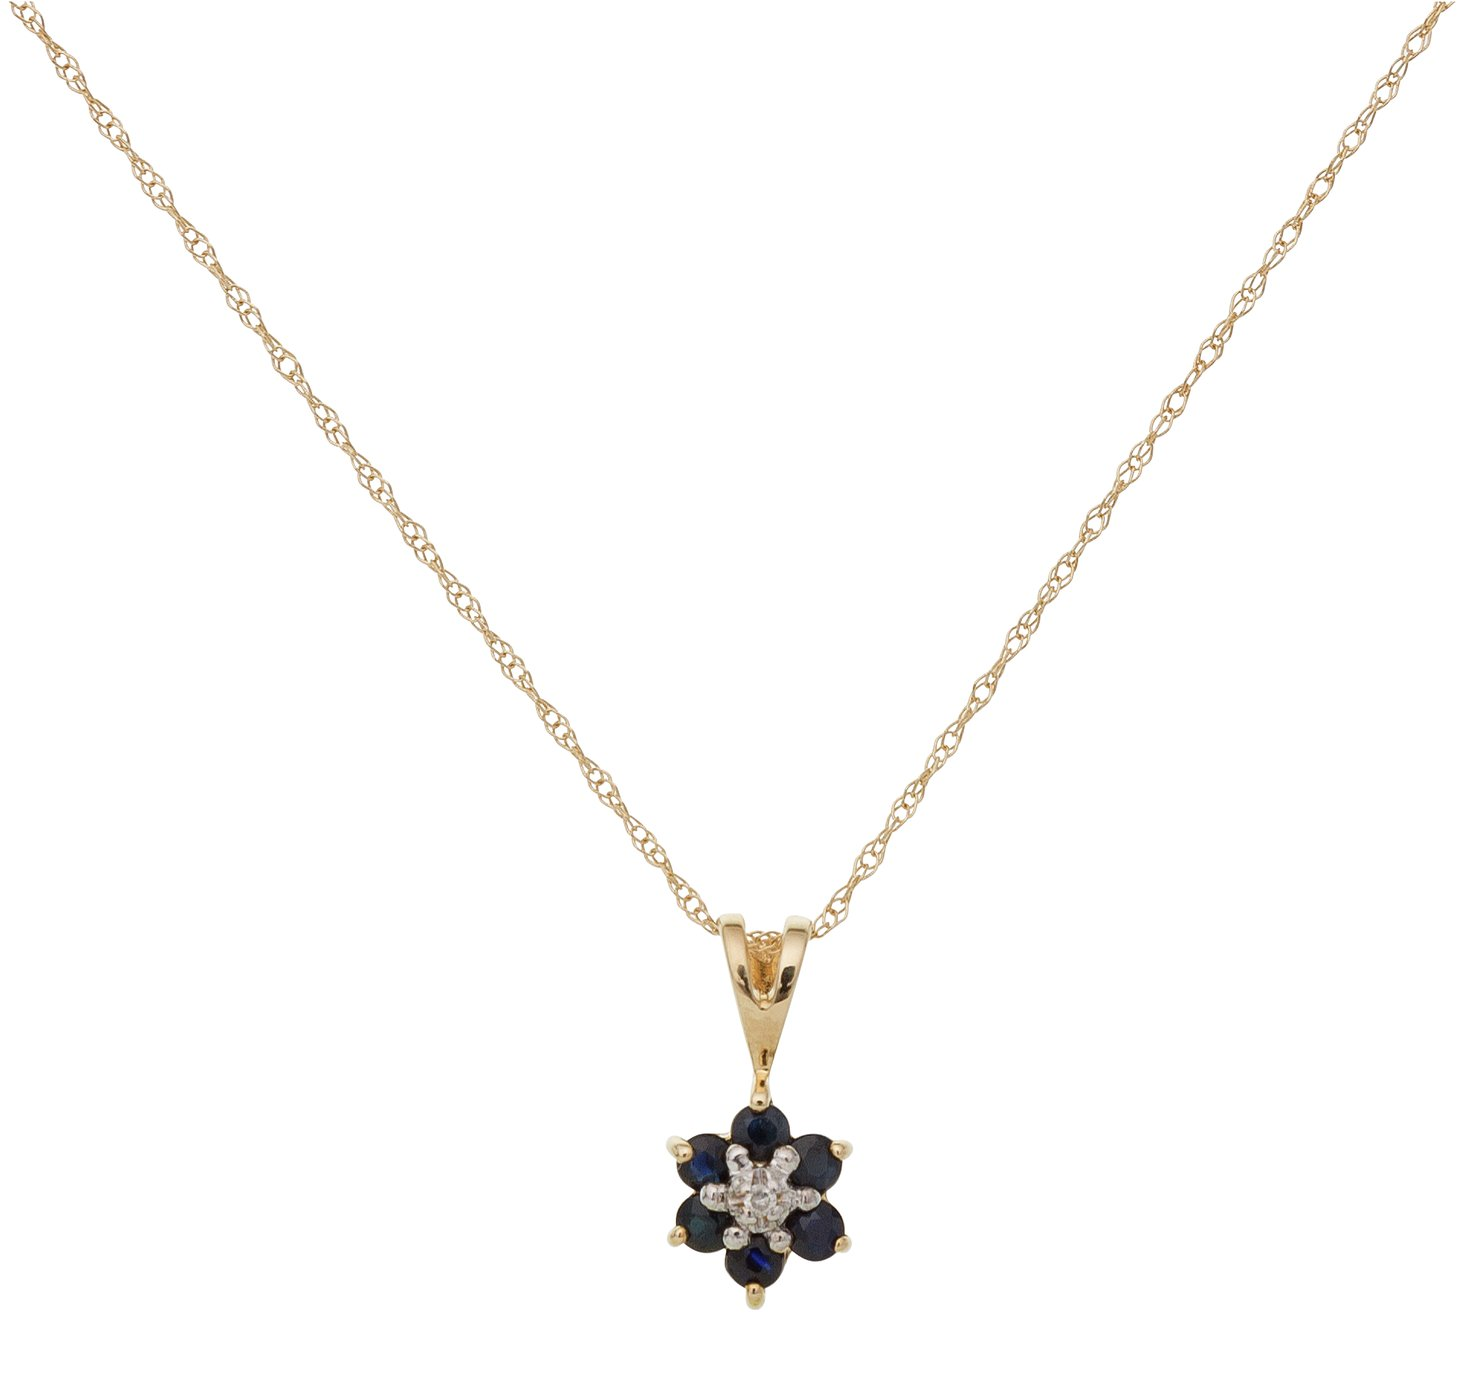 Revere 9ct Gold Diamond Flower Pendant 18 Inch Necklace